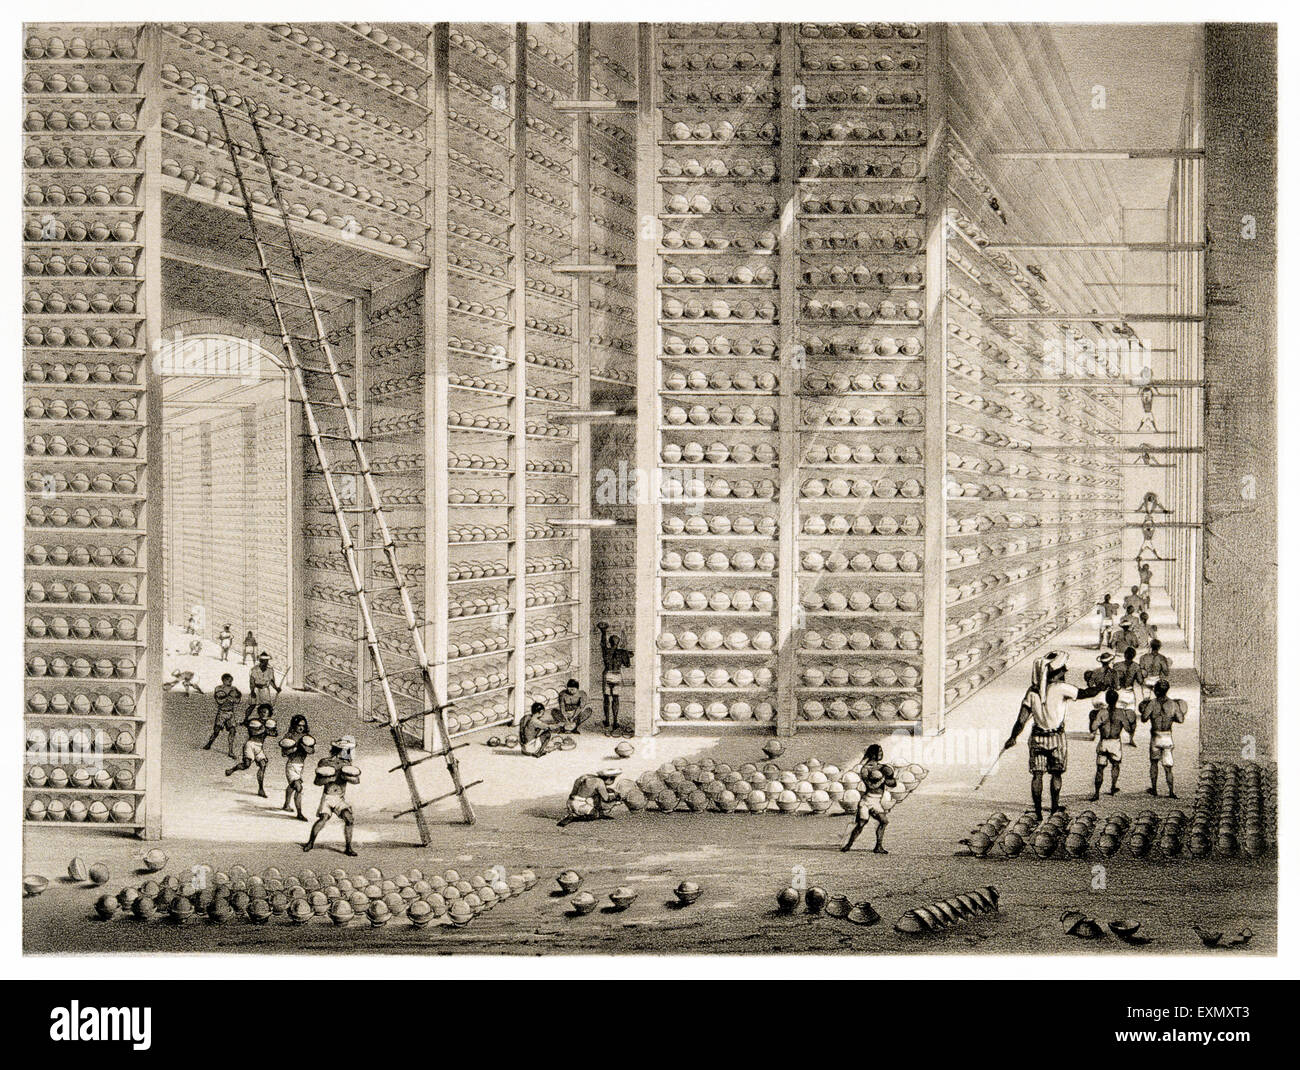 'The Stacking Room' , opium balls or cakes at the British East India Company's Opium factory at Patna, - Stock Image